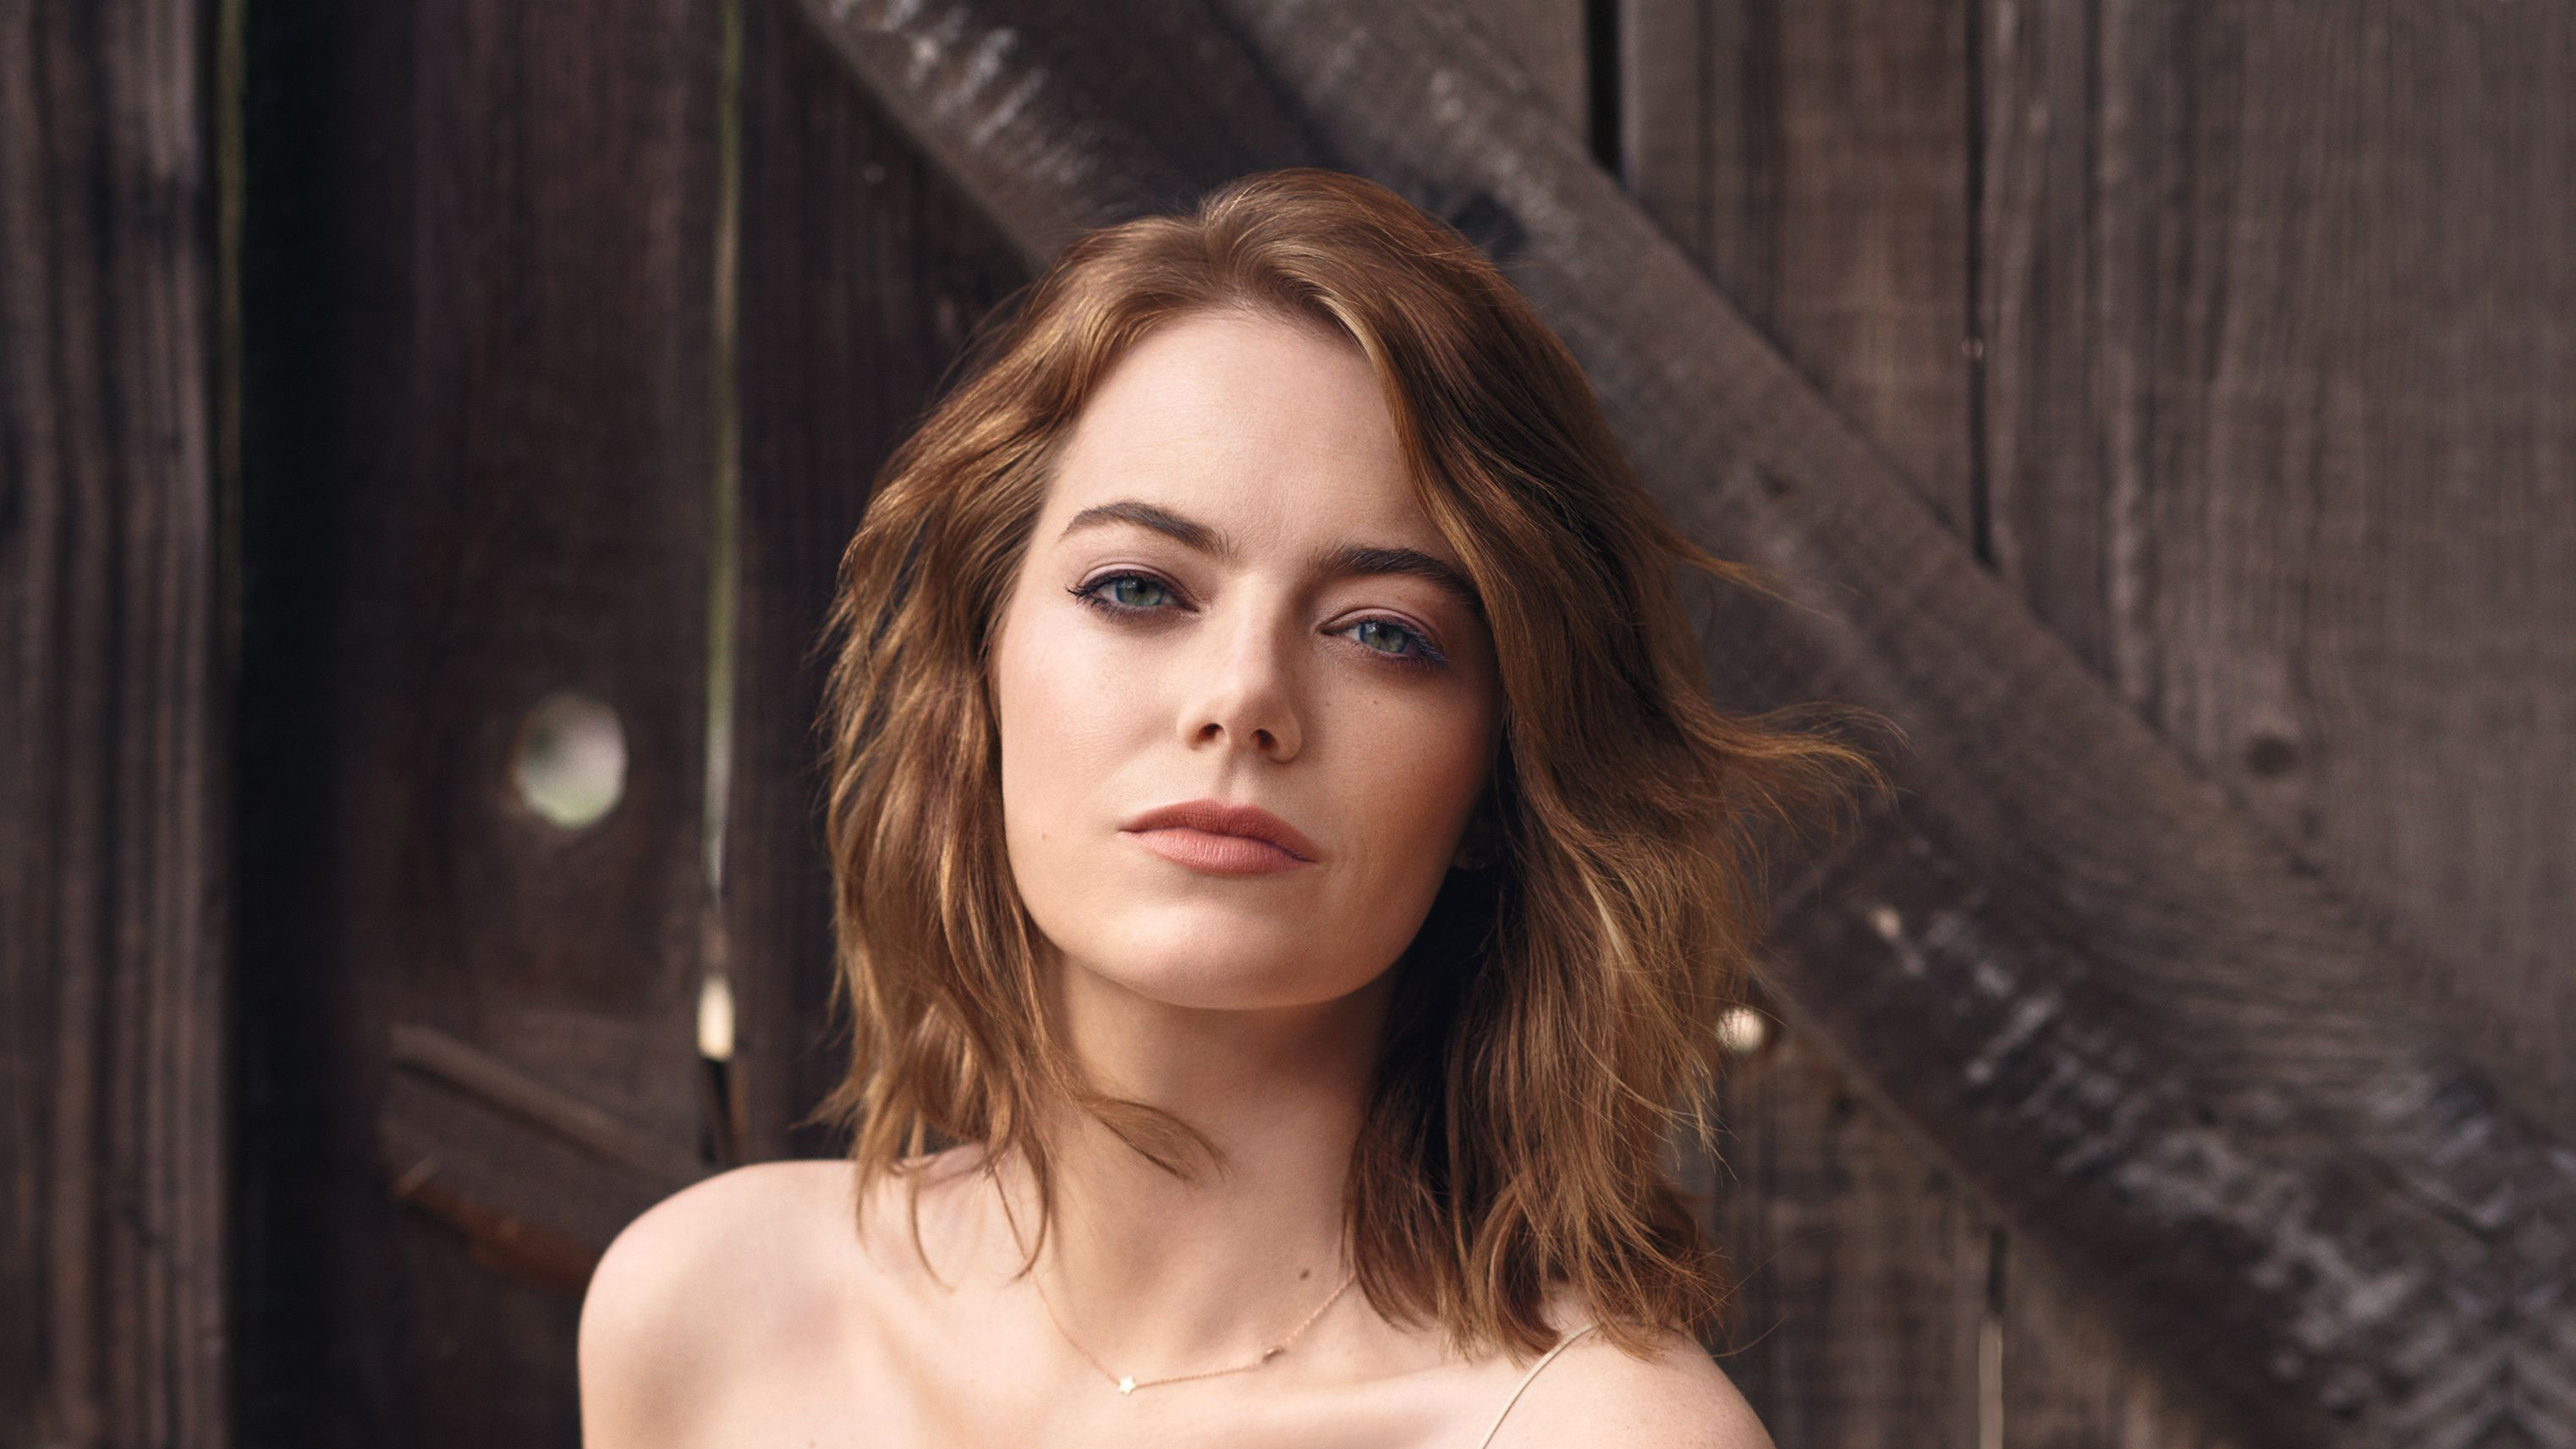 2018 Emma Stone, HD Celebrities, 4k Wallpapers, Image, Backgrounds